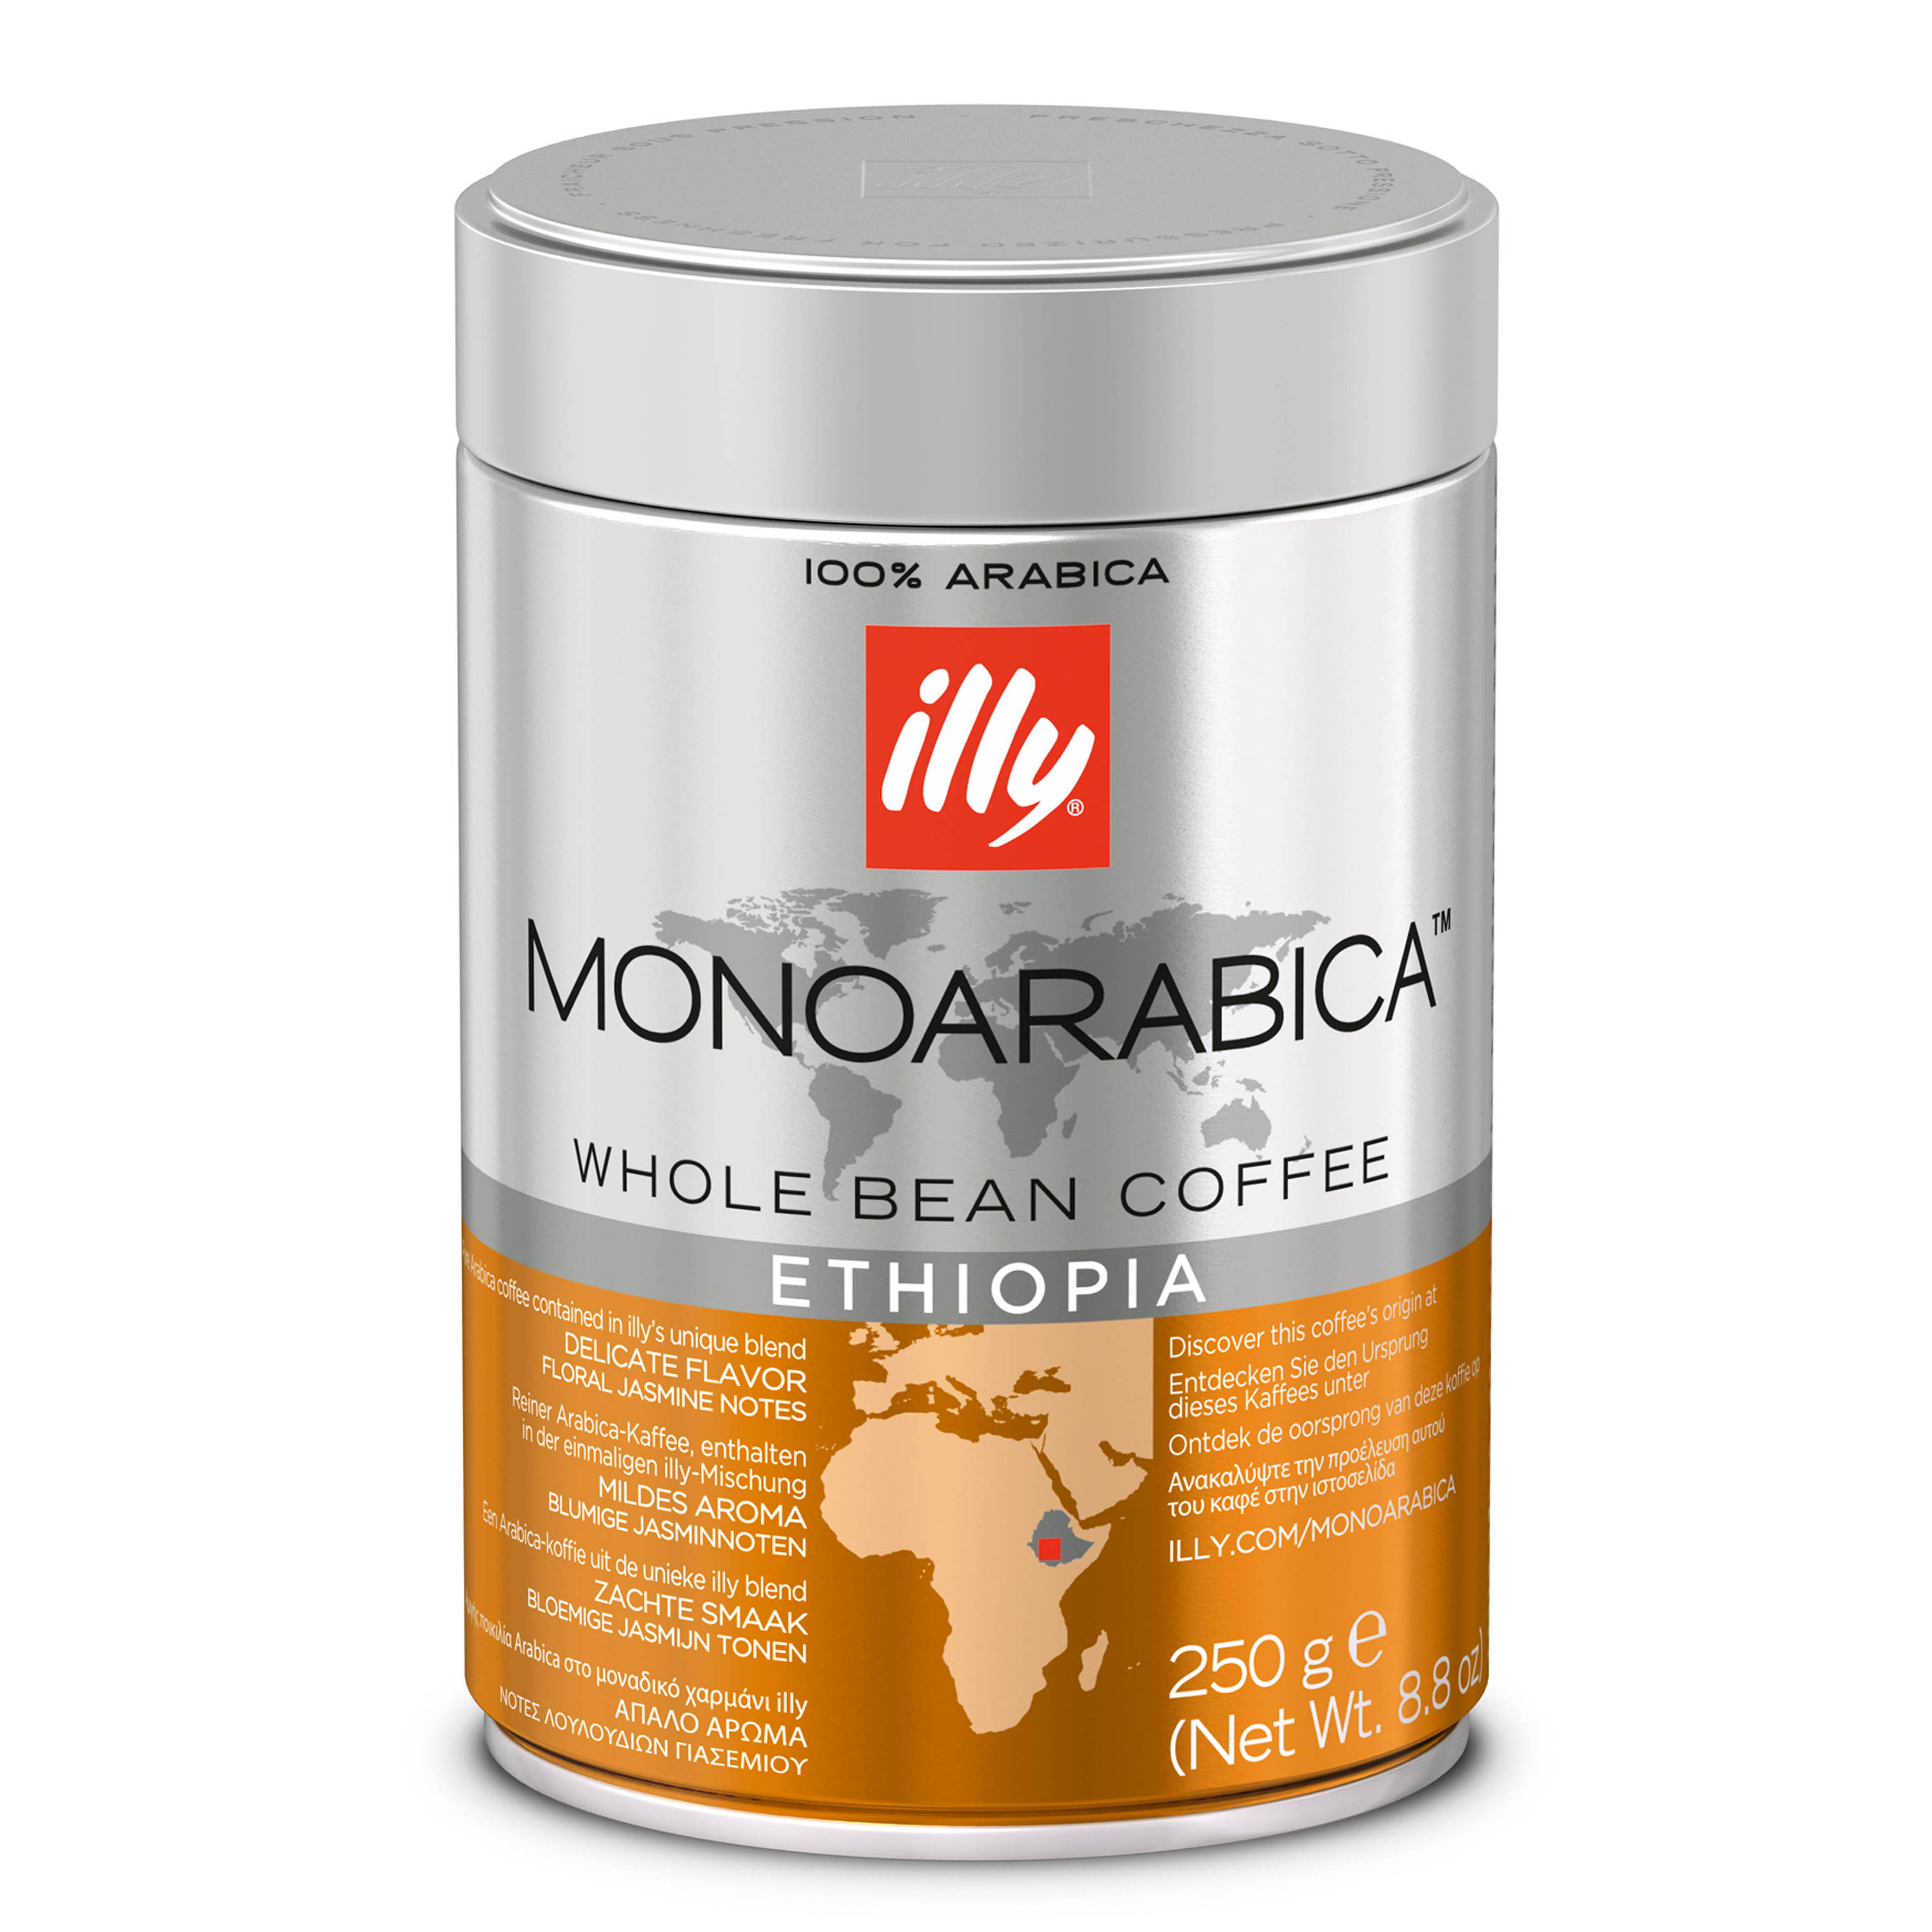 Illy Ethiopia Monoarabica Whole Bean Coffee - 250g (pc)